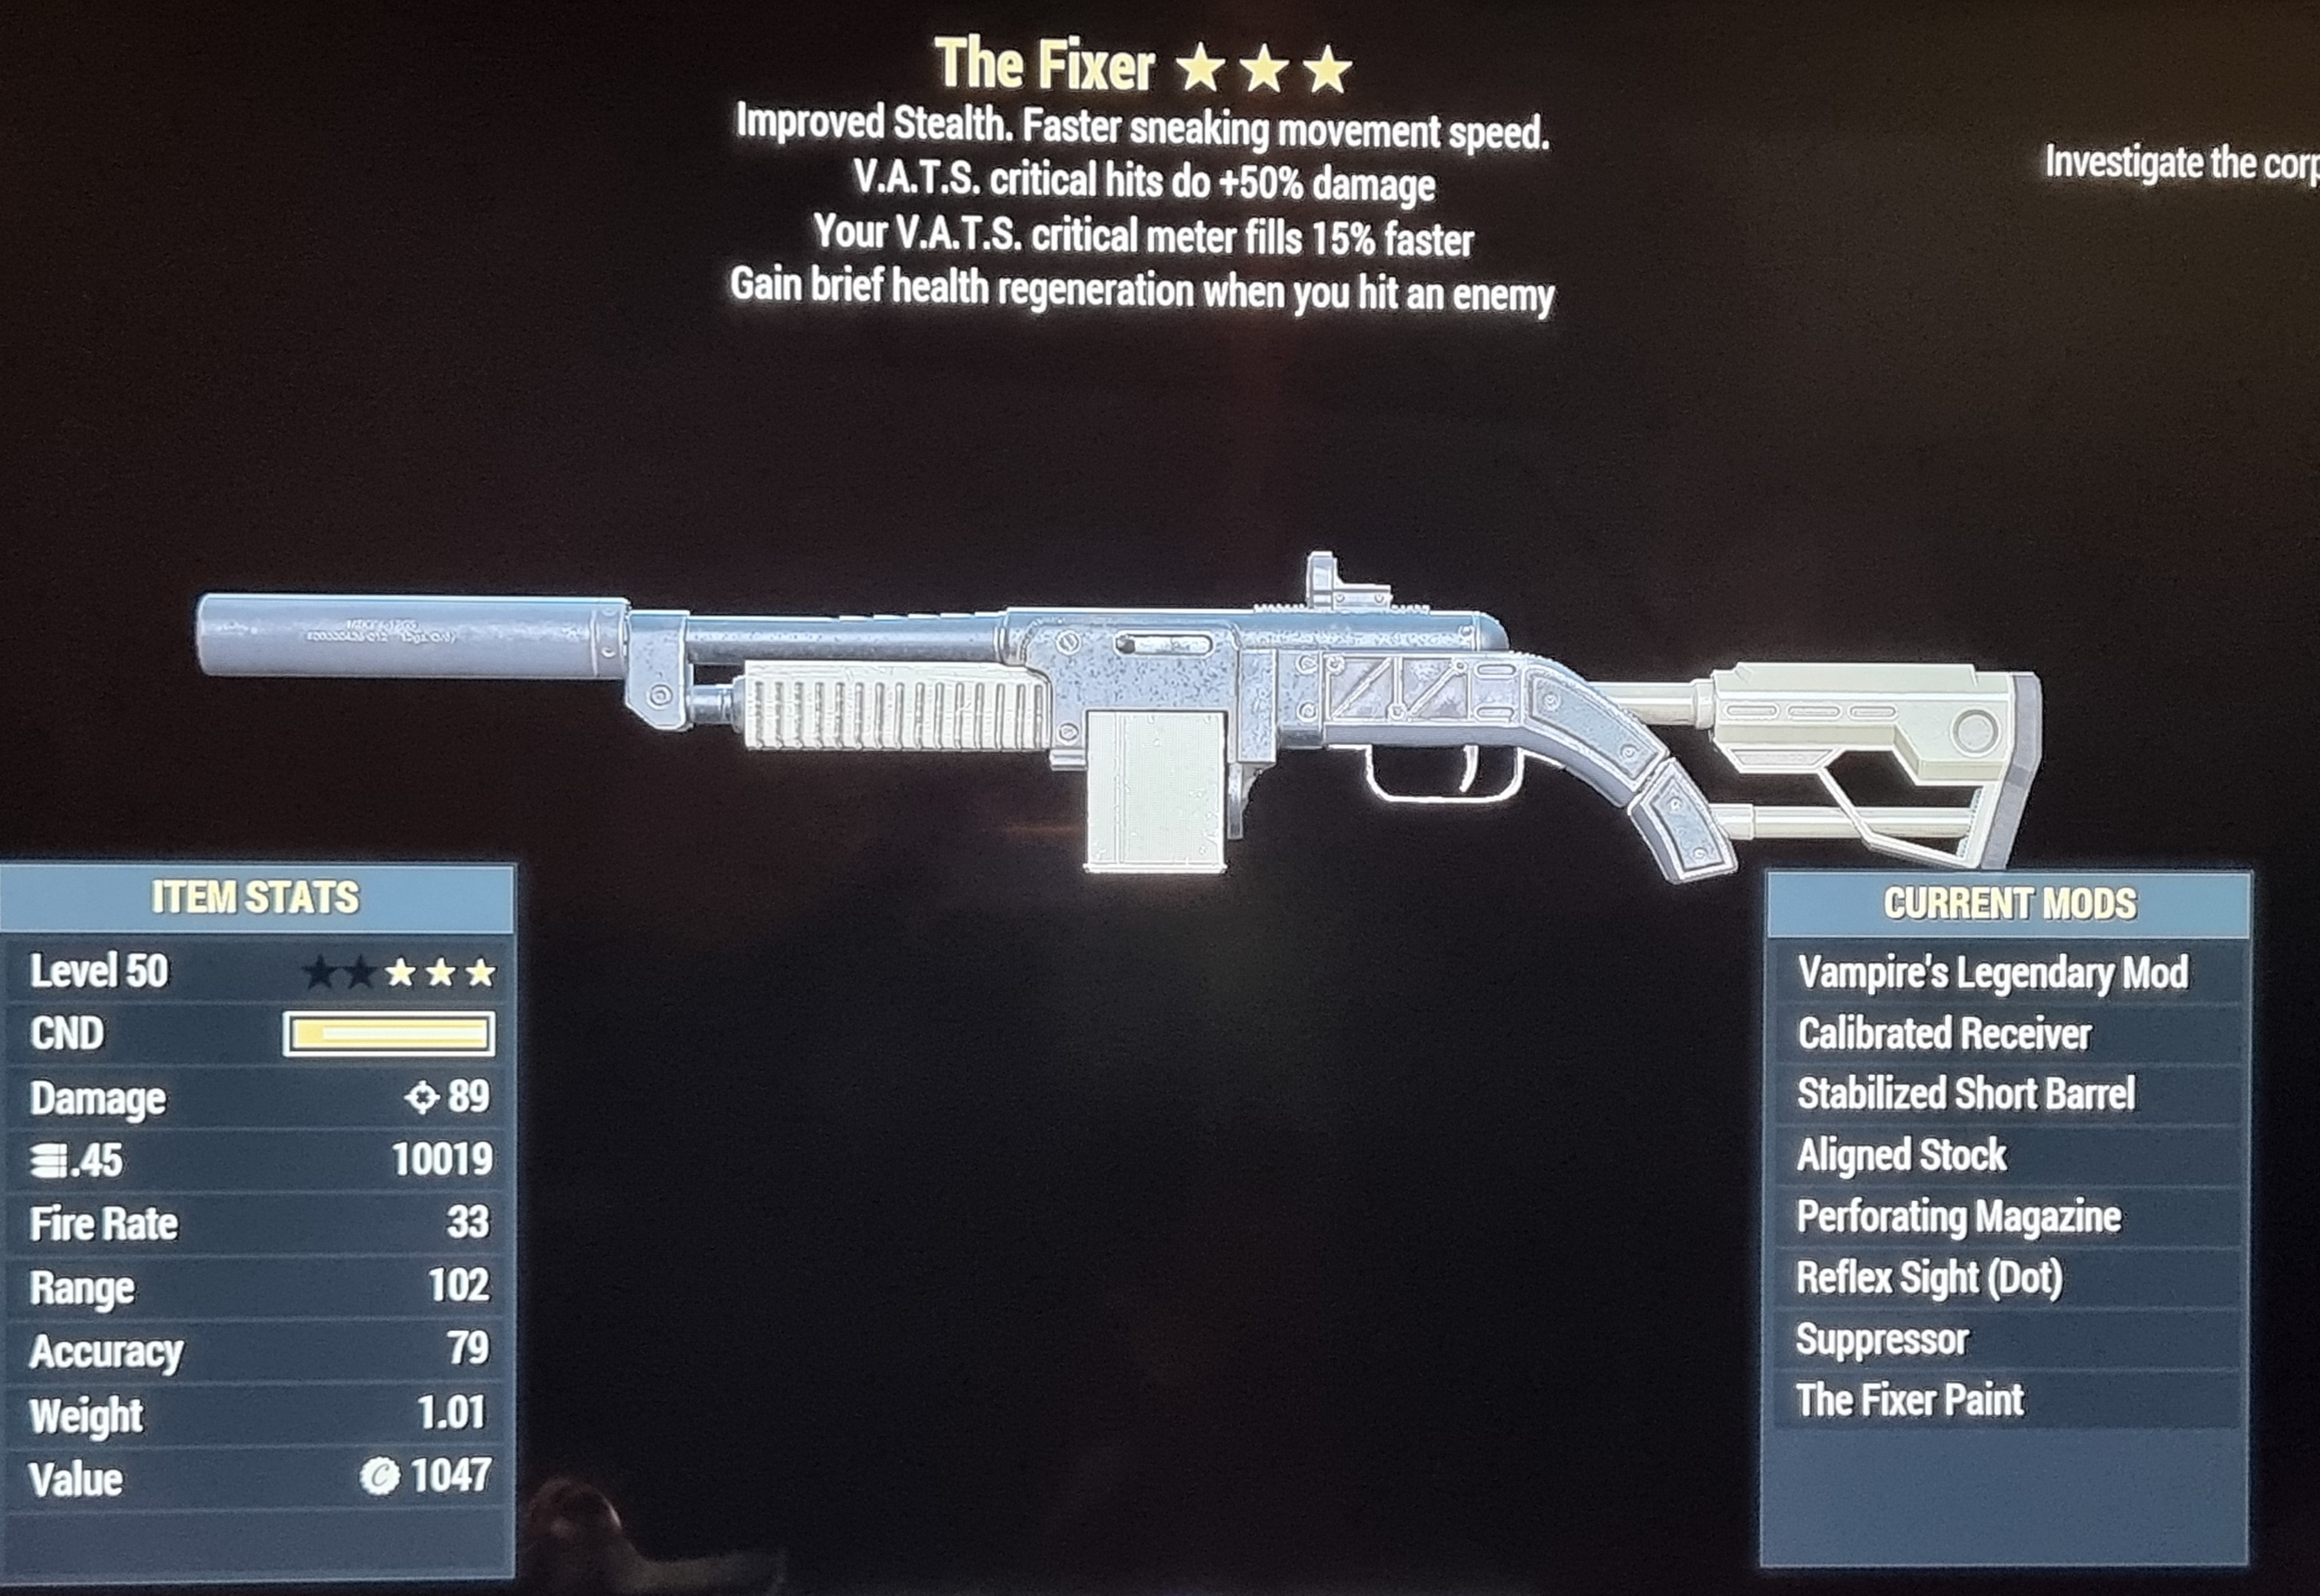 Vampires fixer crit hits do +50% more damage. Crit meter fills faster FALLOUT 76 PS4